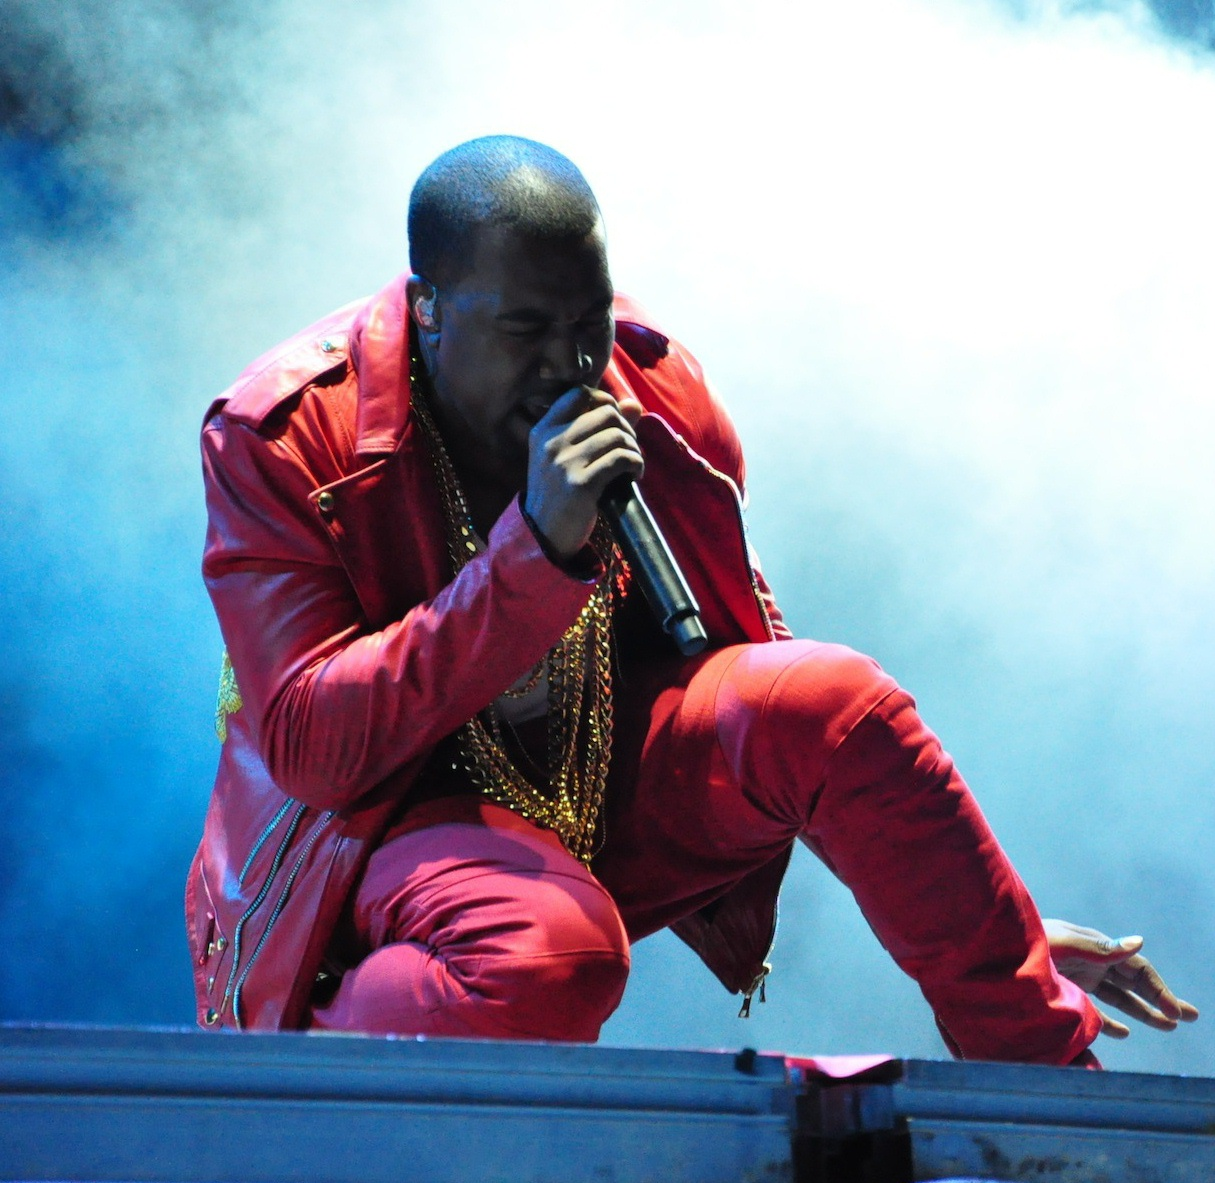 Kanye West Replaces Christian Comedian, John Crist at Christian Youth Conference